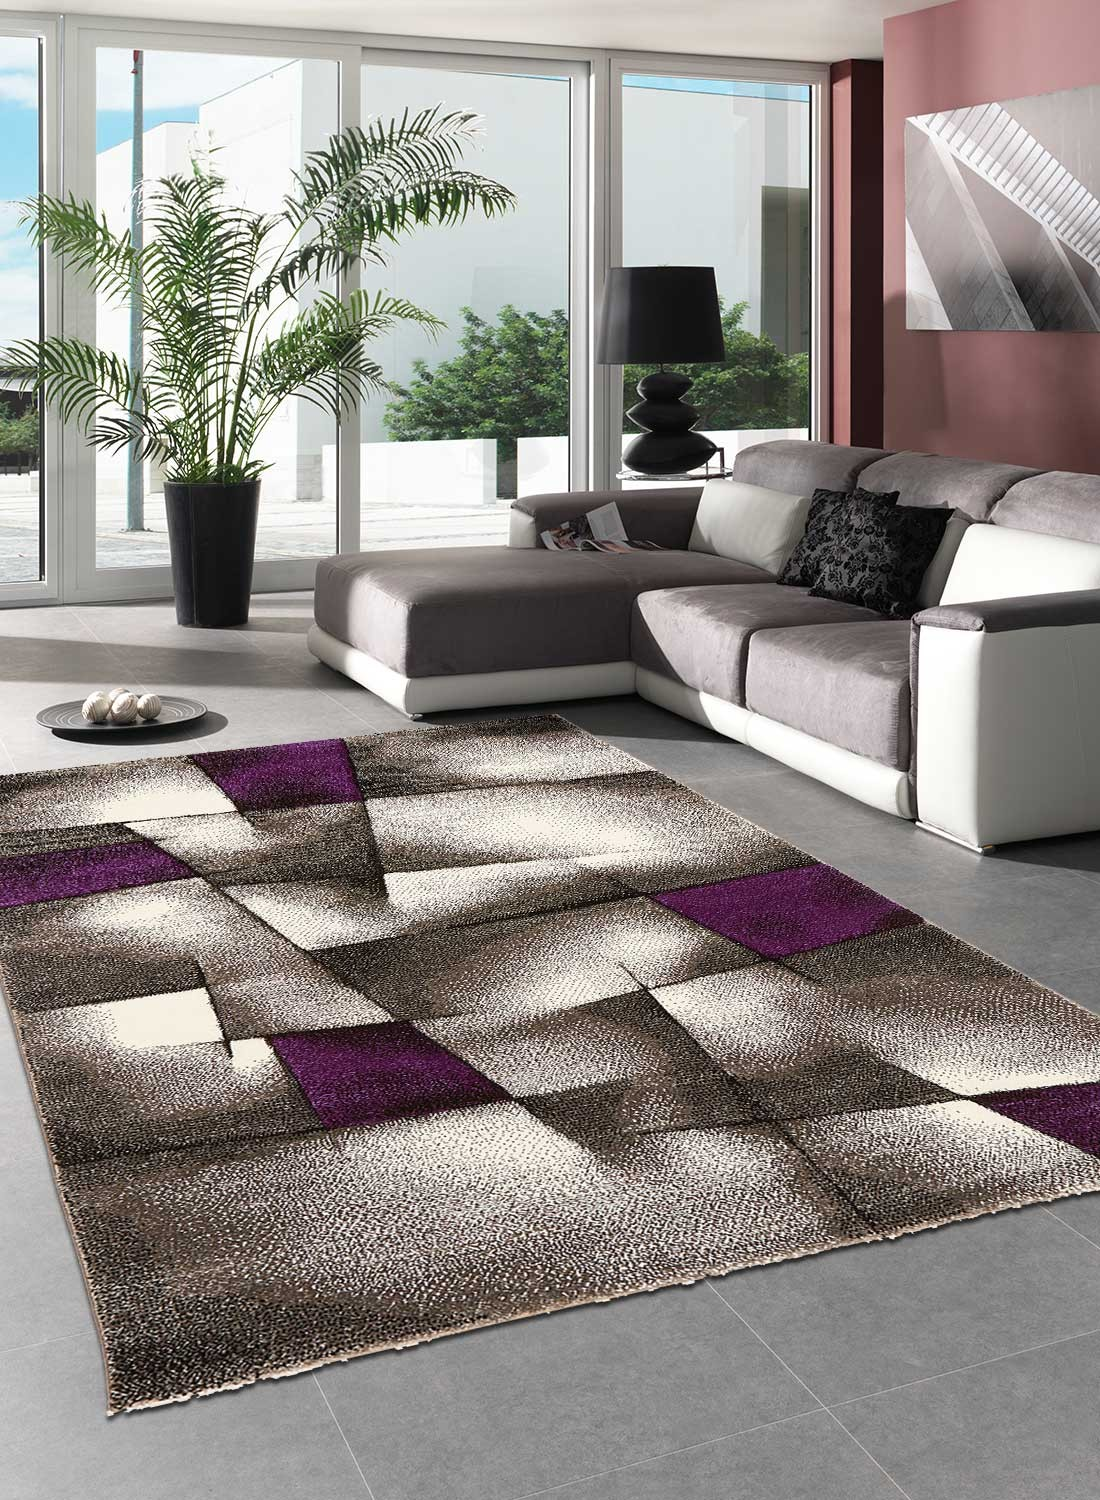 tapis pour salon pas cher id es de d coration int rieure french decor. Black Bedroom Furniture Sets. Home Design Ideas